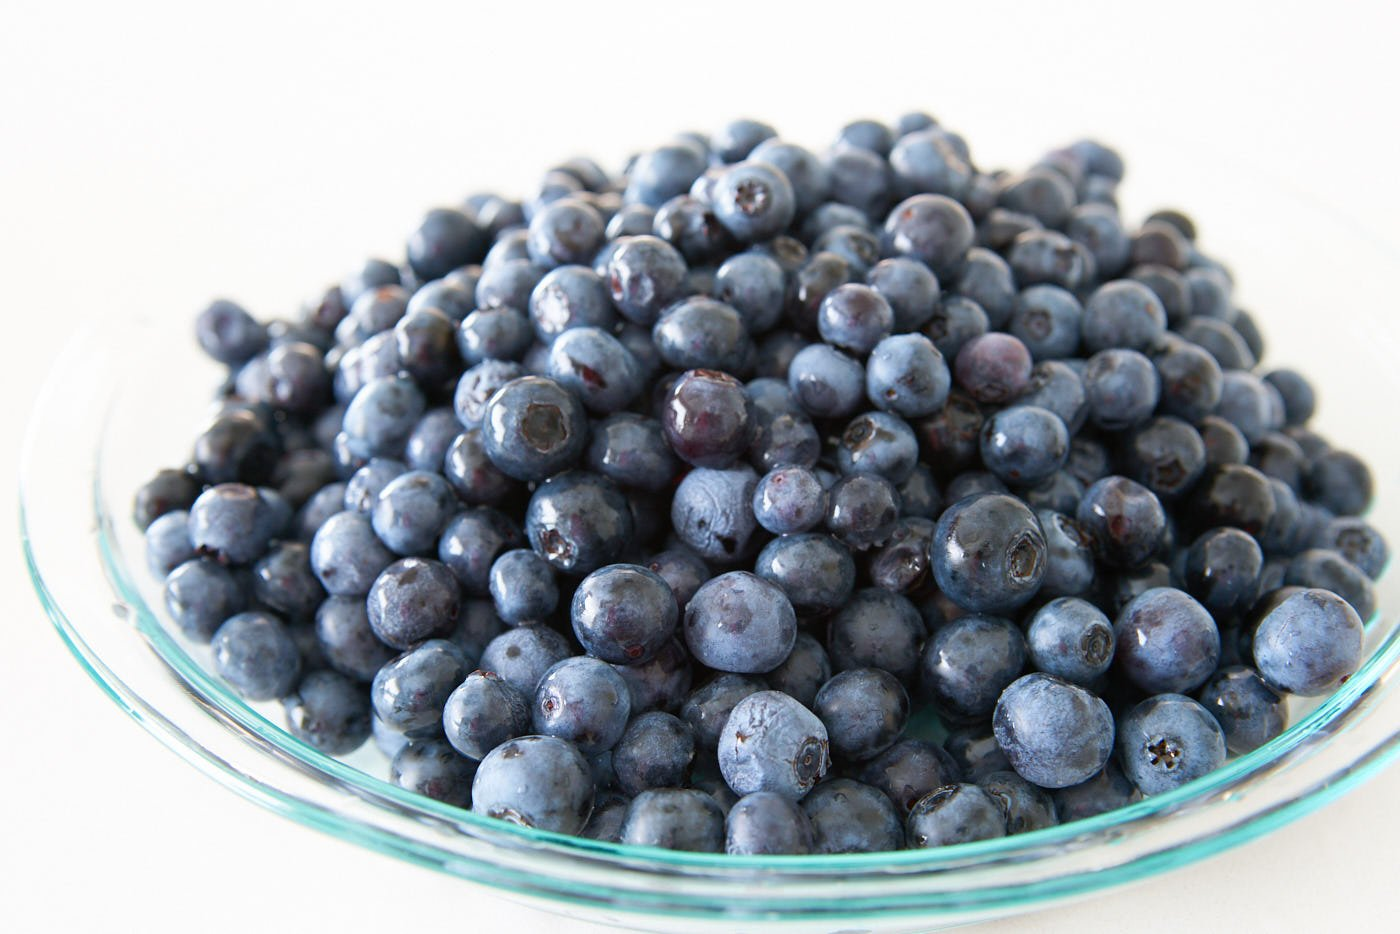 Big haul of freshly picked blueberries in a pie plate is a good way to start cobbler.